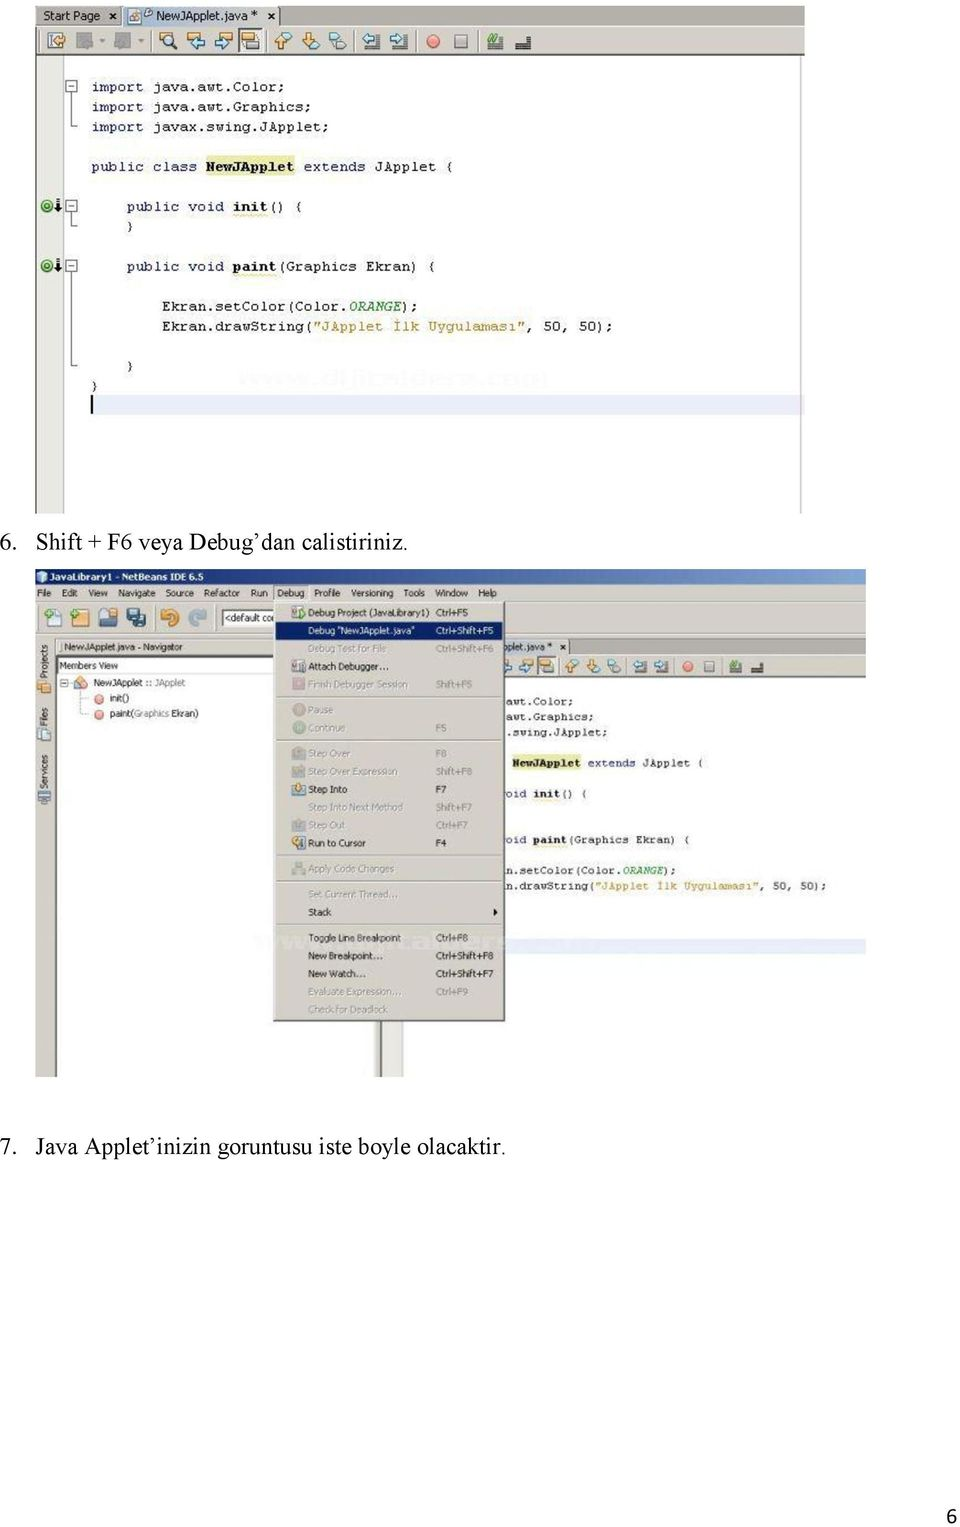 Java Applet inizin